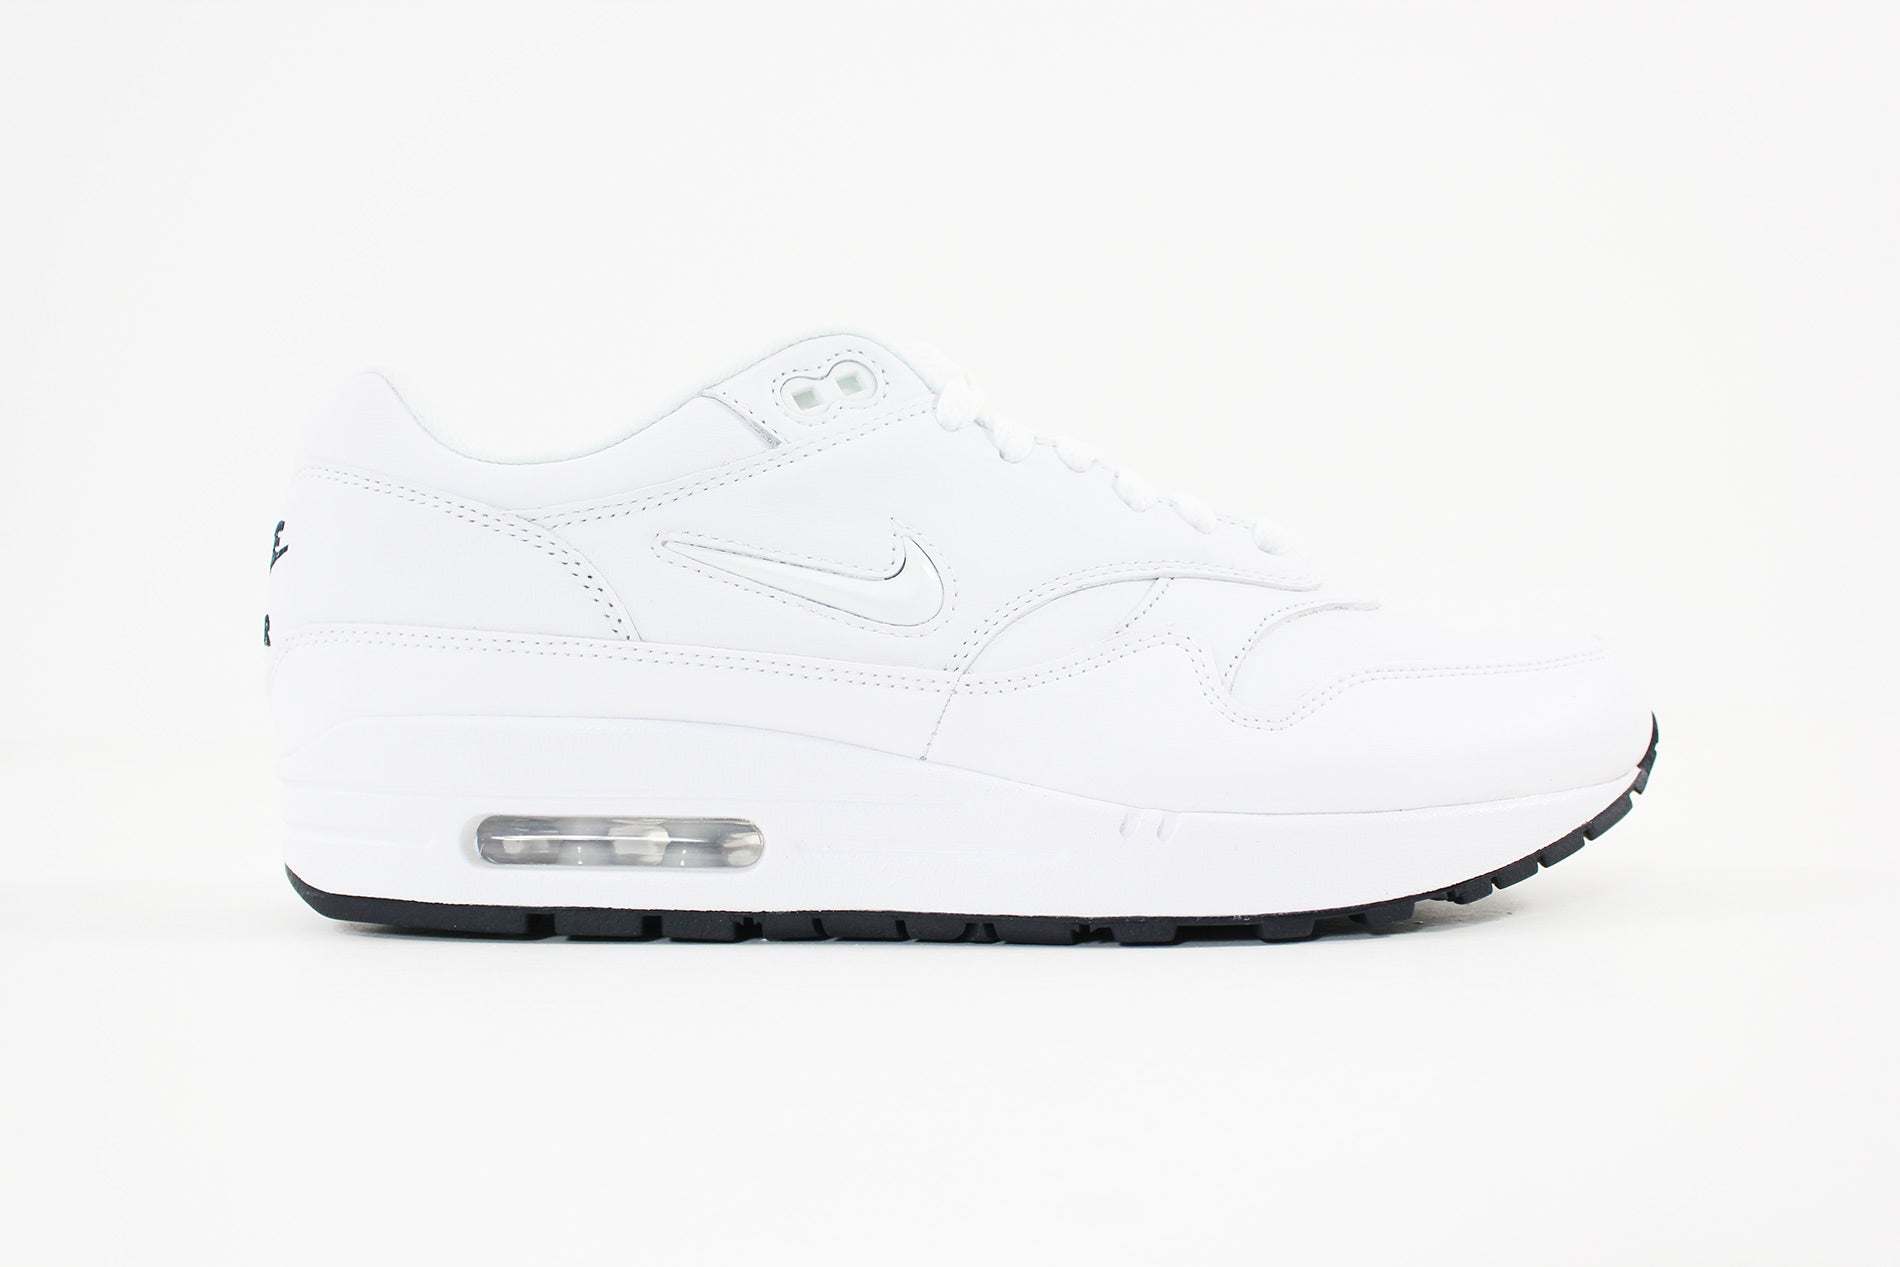 timeless design 21d2f 7a770 Nike - Air Max 1 Premium SC Shoe (WHITE/WHITE-DARK OBSIDIAN)